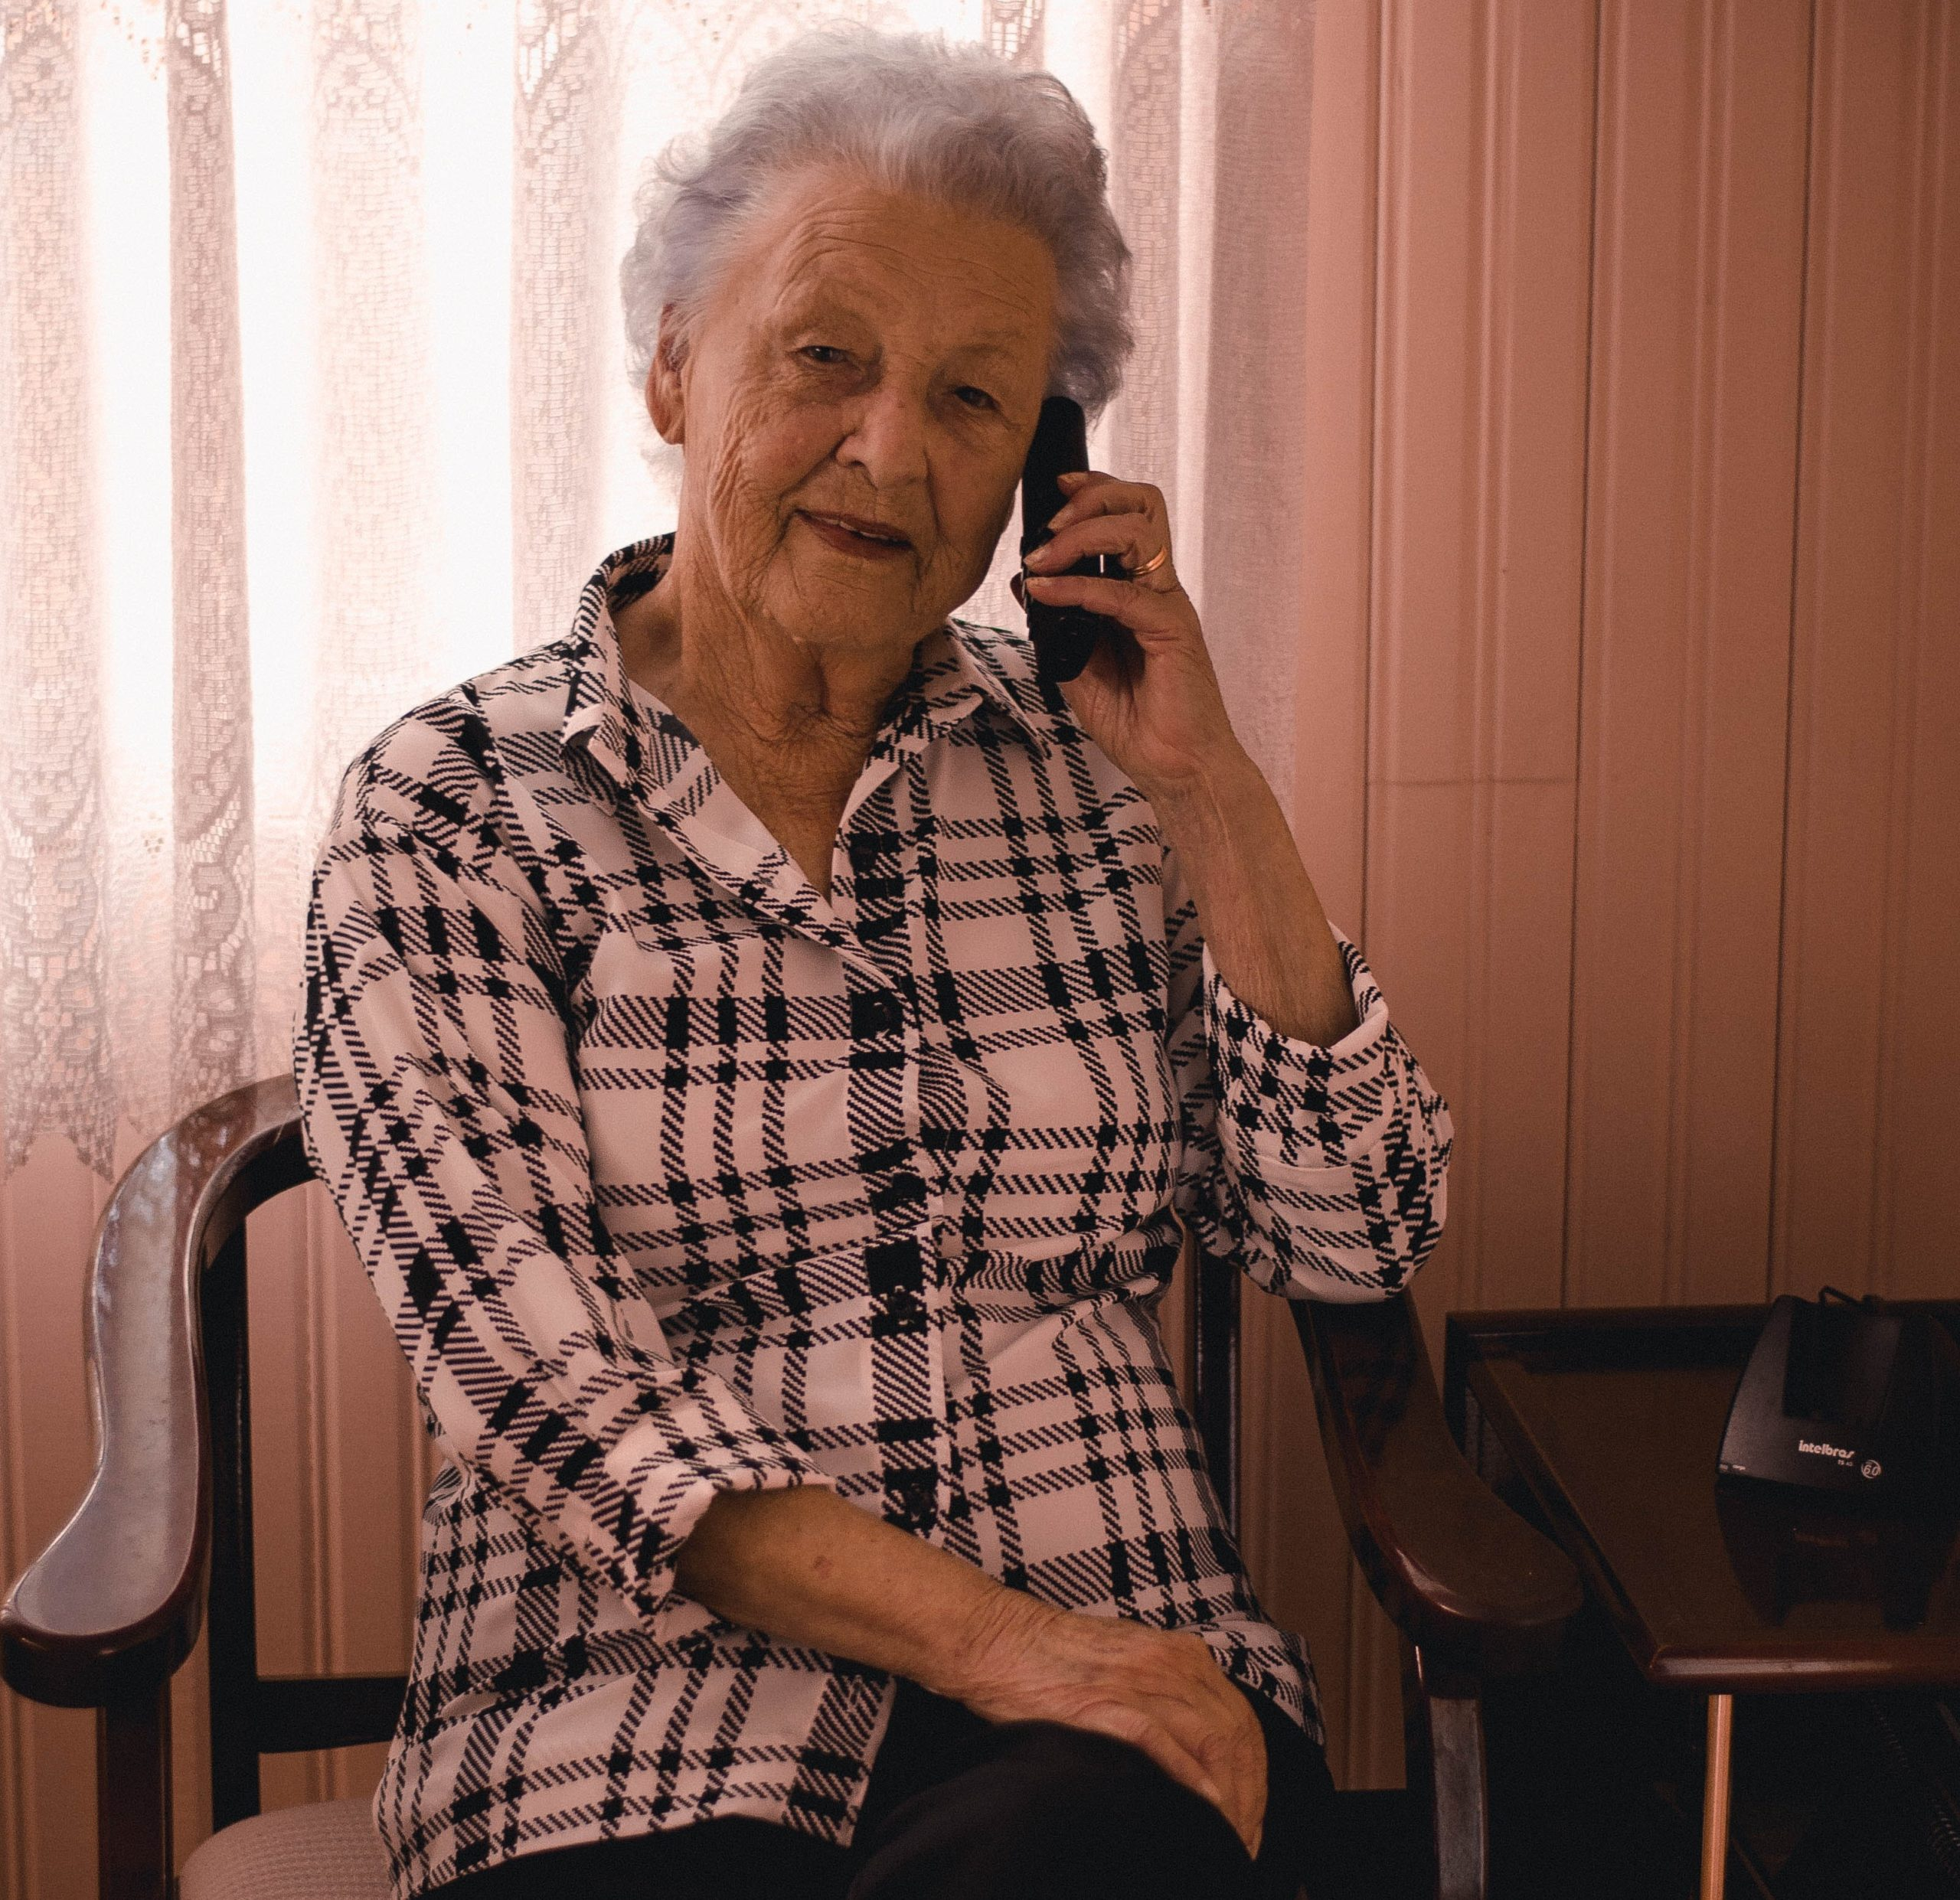 An elderly woman answering the phone